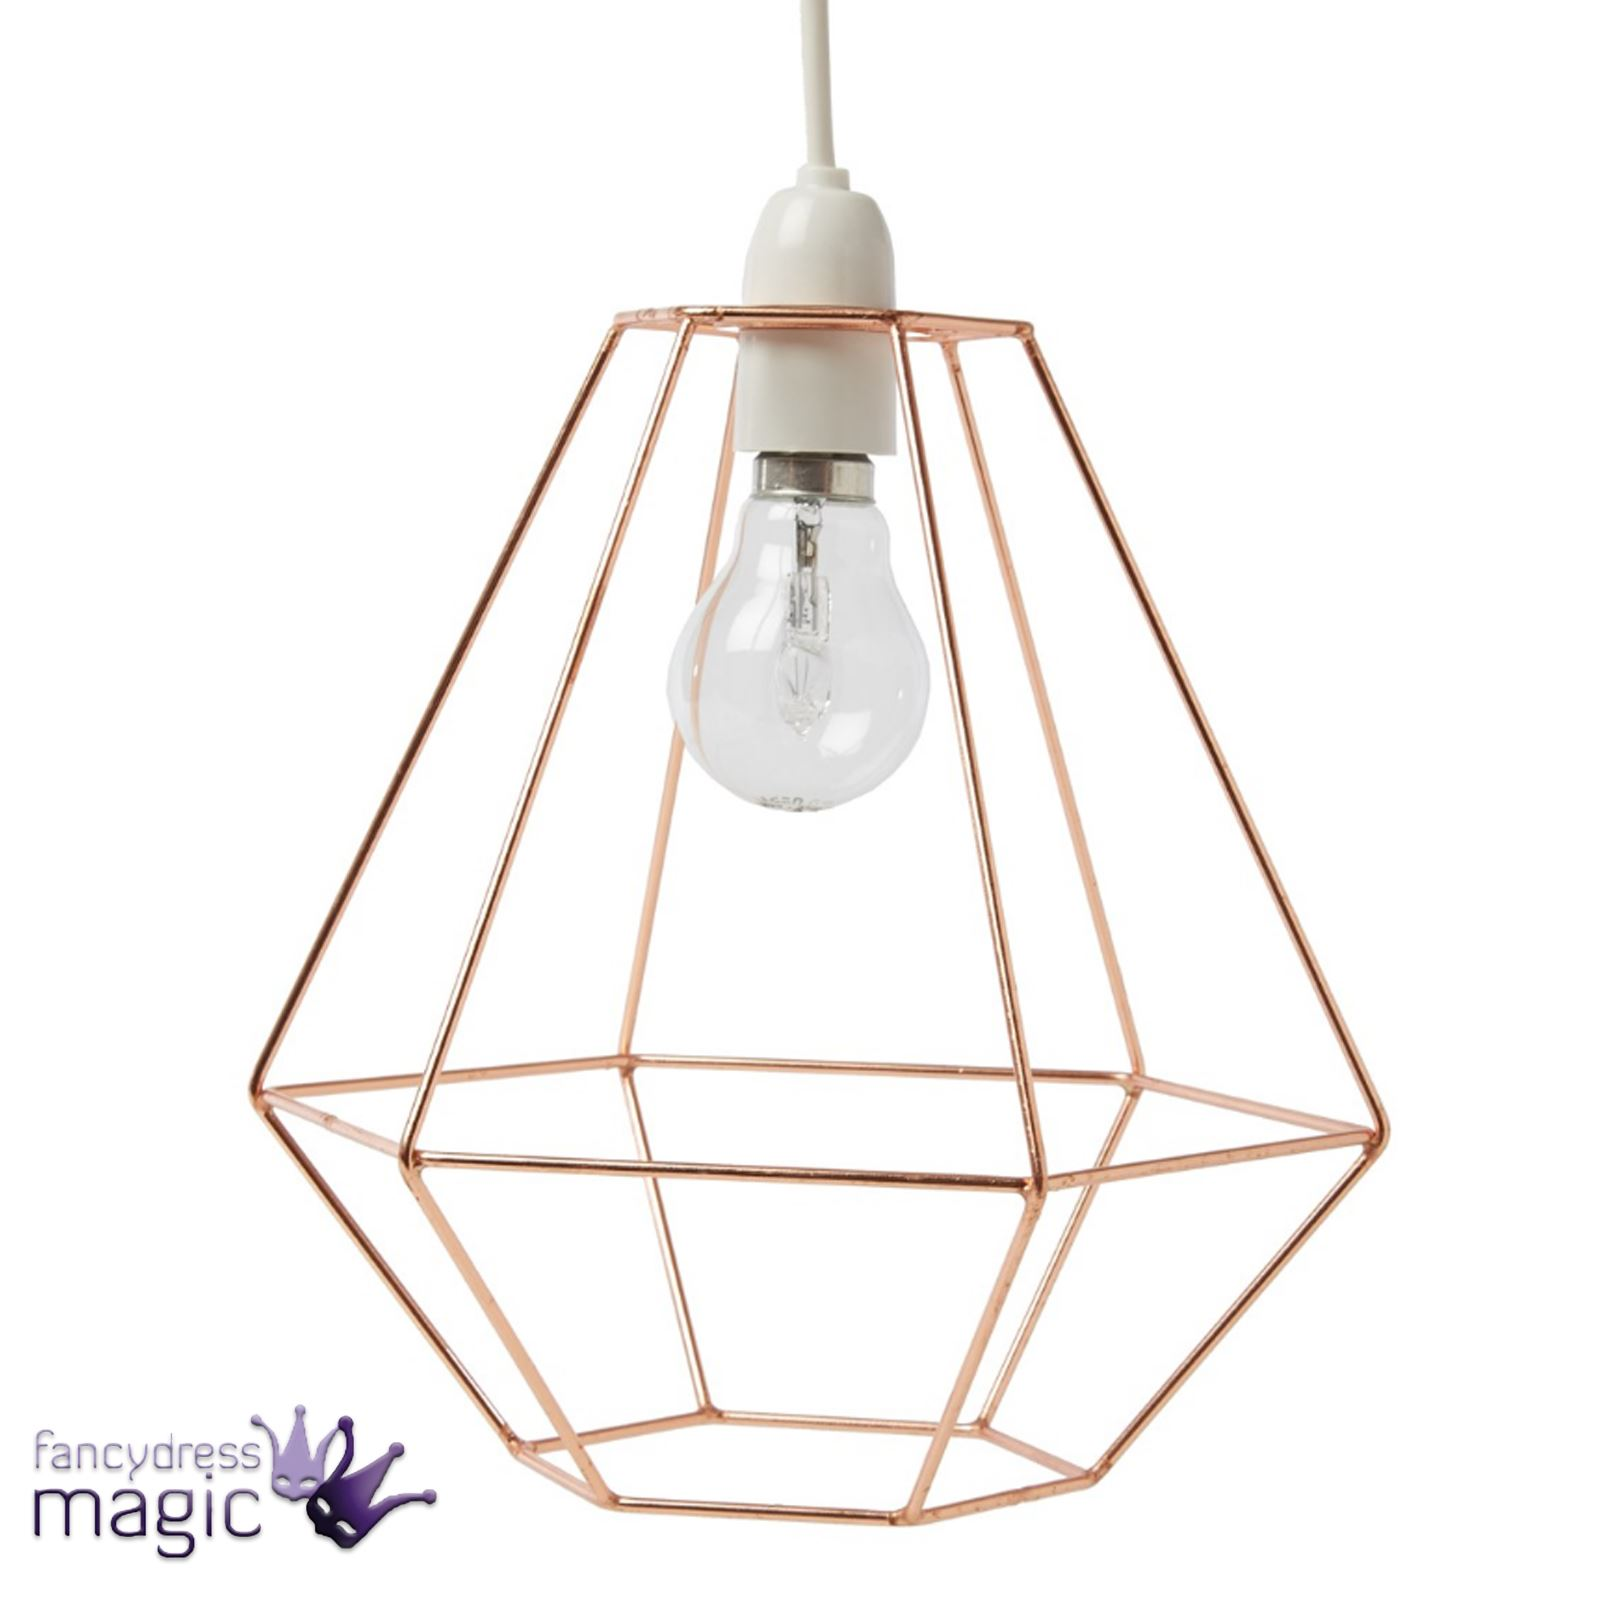 Geometric wire lampshade wire center sass belle copper wire diamond lampshade light hanging geometric rh ebay co uk lamp shade wire frames chicken wire lamp shade keyboard keysfo Gallery